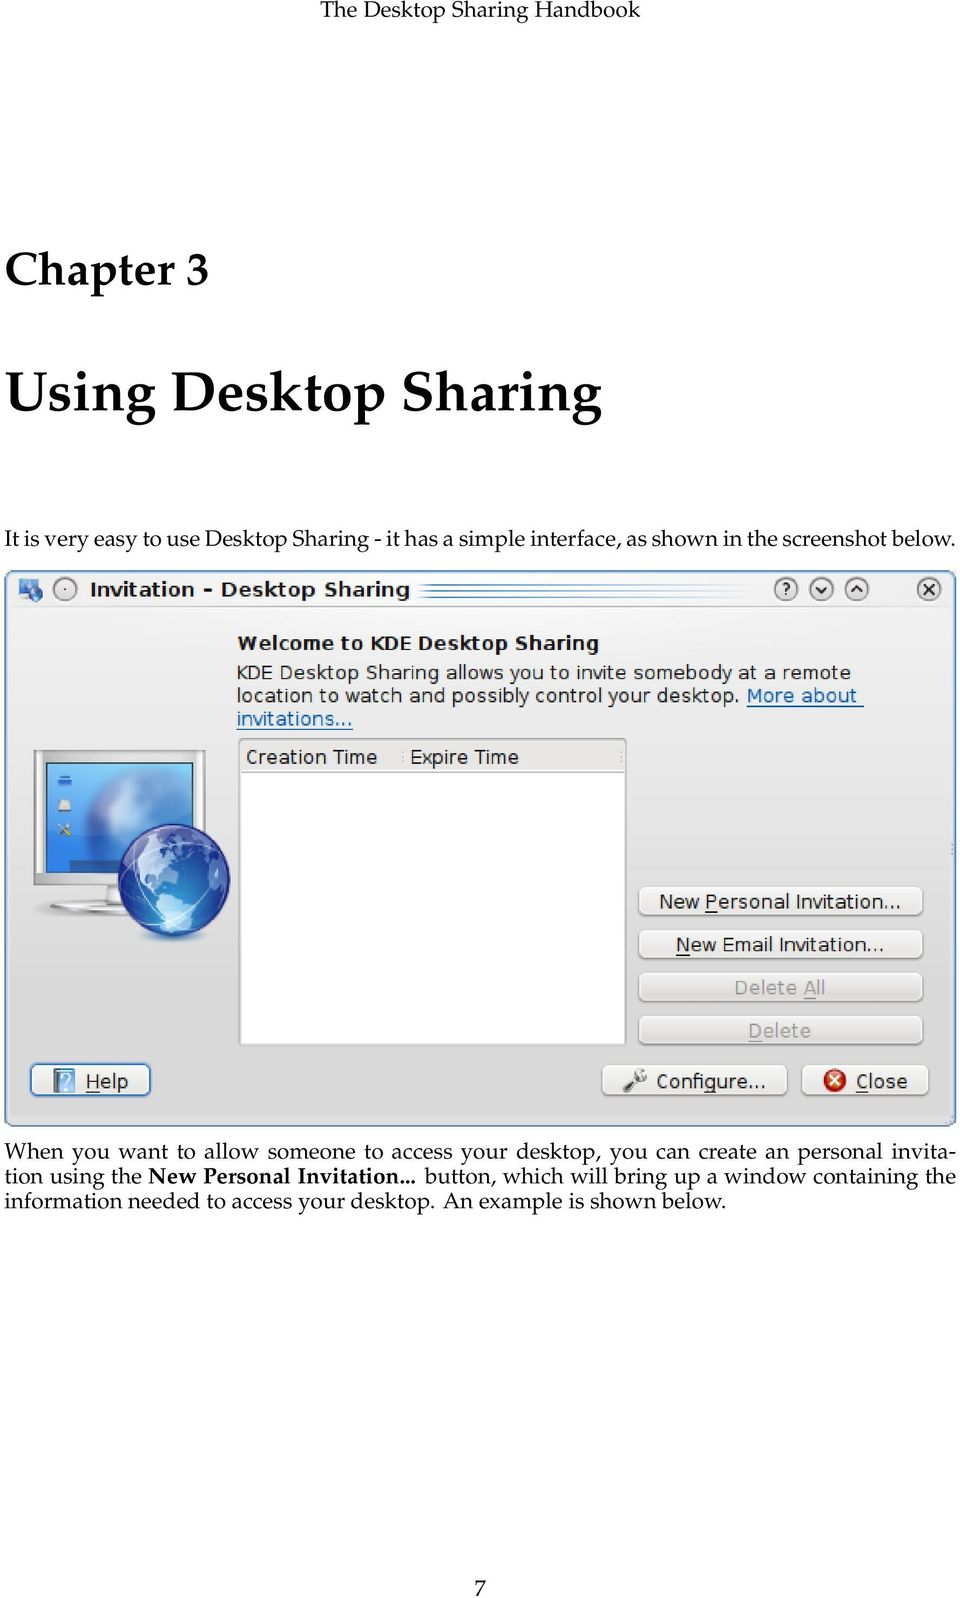 When you want to allow someone to access your desktop, you can create an personal invitation